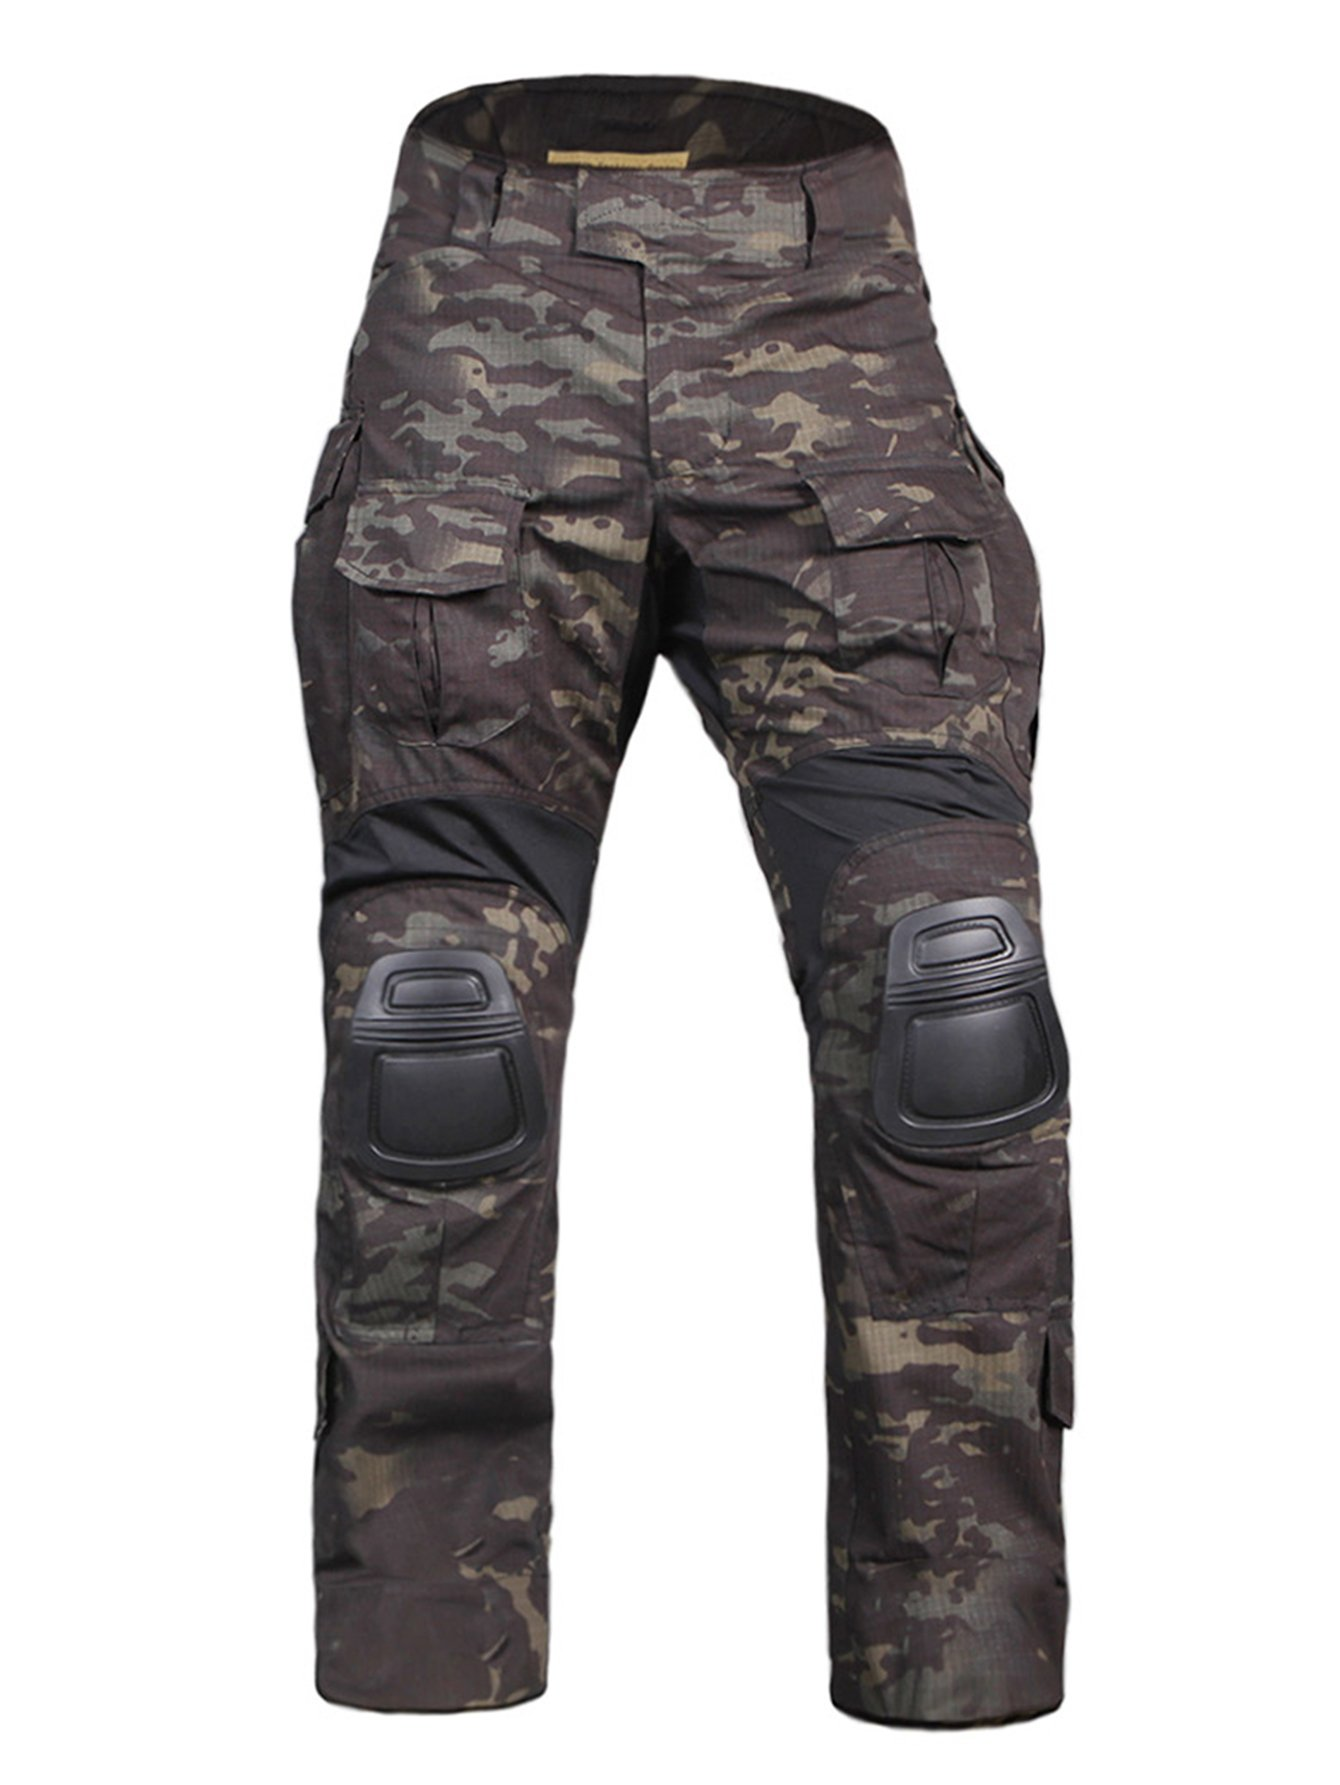 EMERSONGEAR Tactical Camouflage Pants with Knee Pads Military Combat Trousers Army for Airsoft Paintball MCBK Small